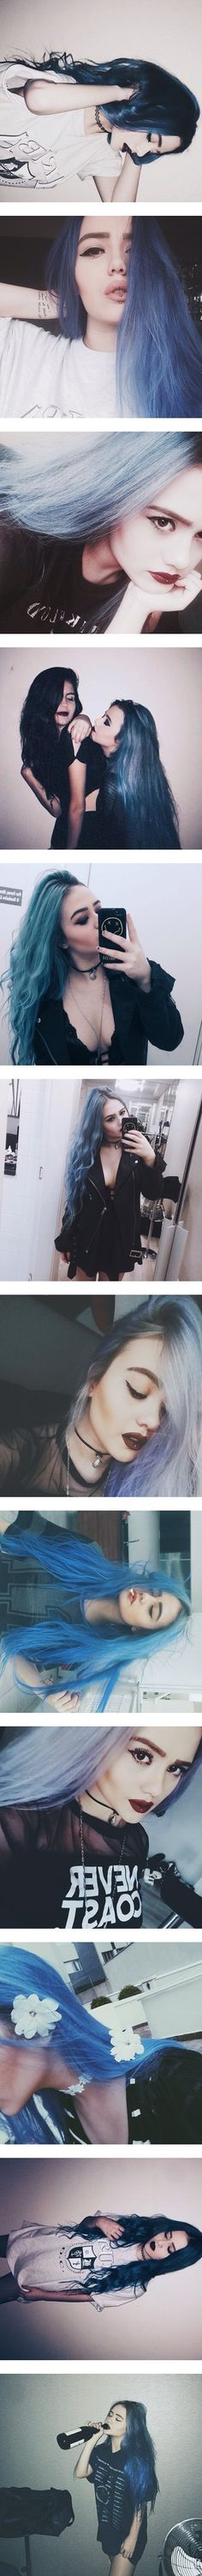 [ evie dee ;; wtfevie ] by absolute-zero on Polyvore